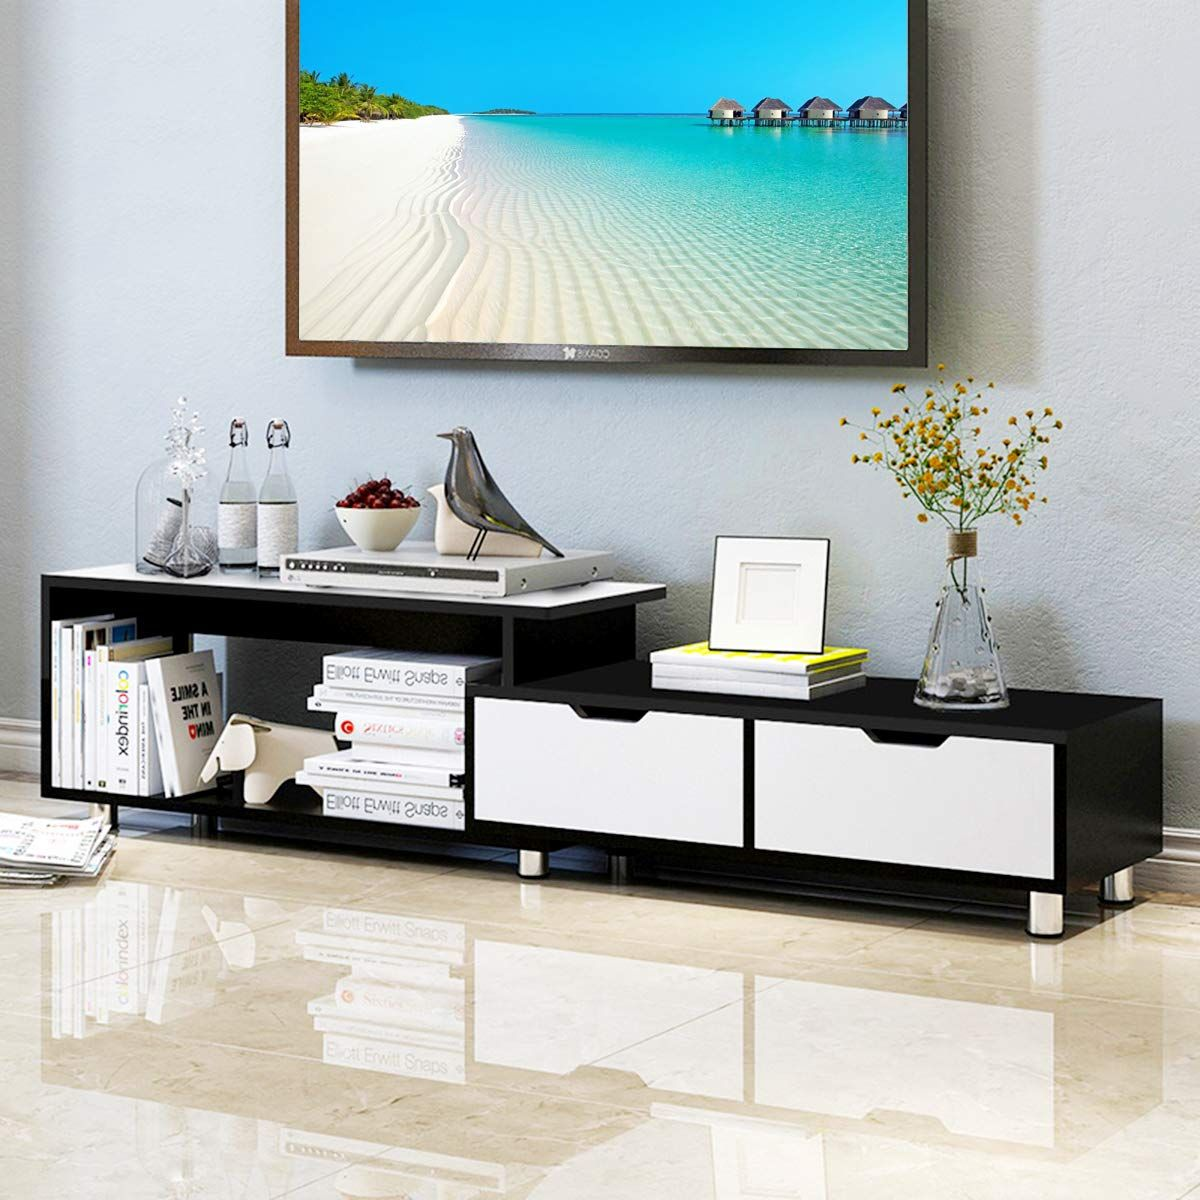 10+ Best Tv Unit For Living Room